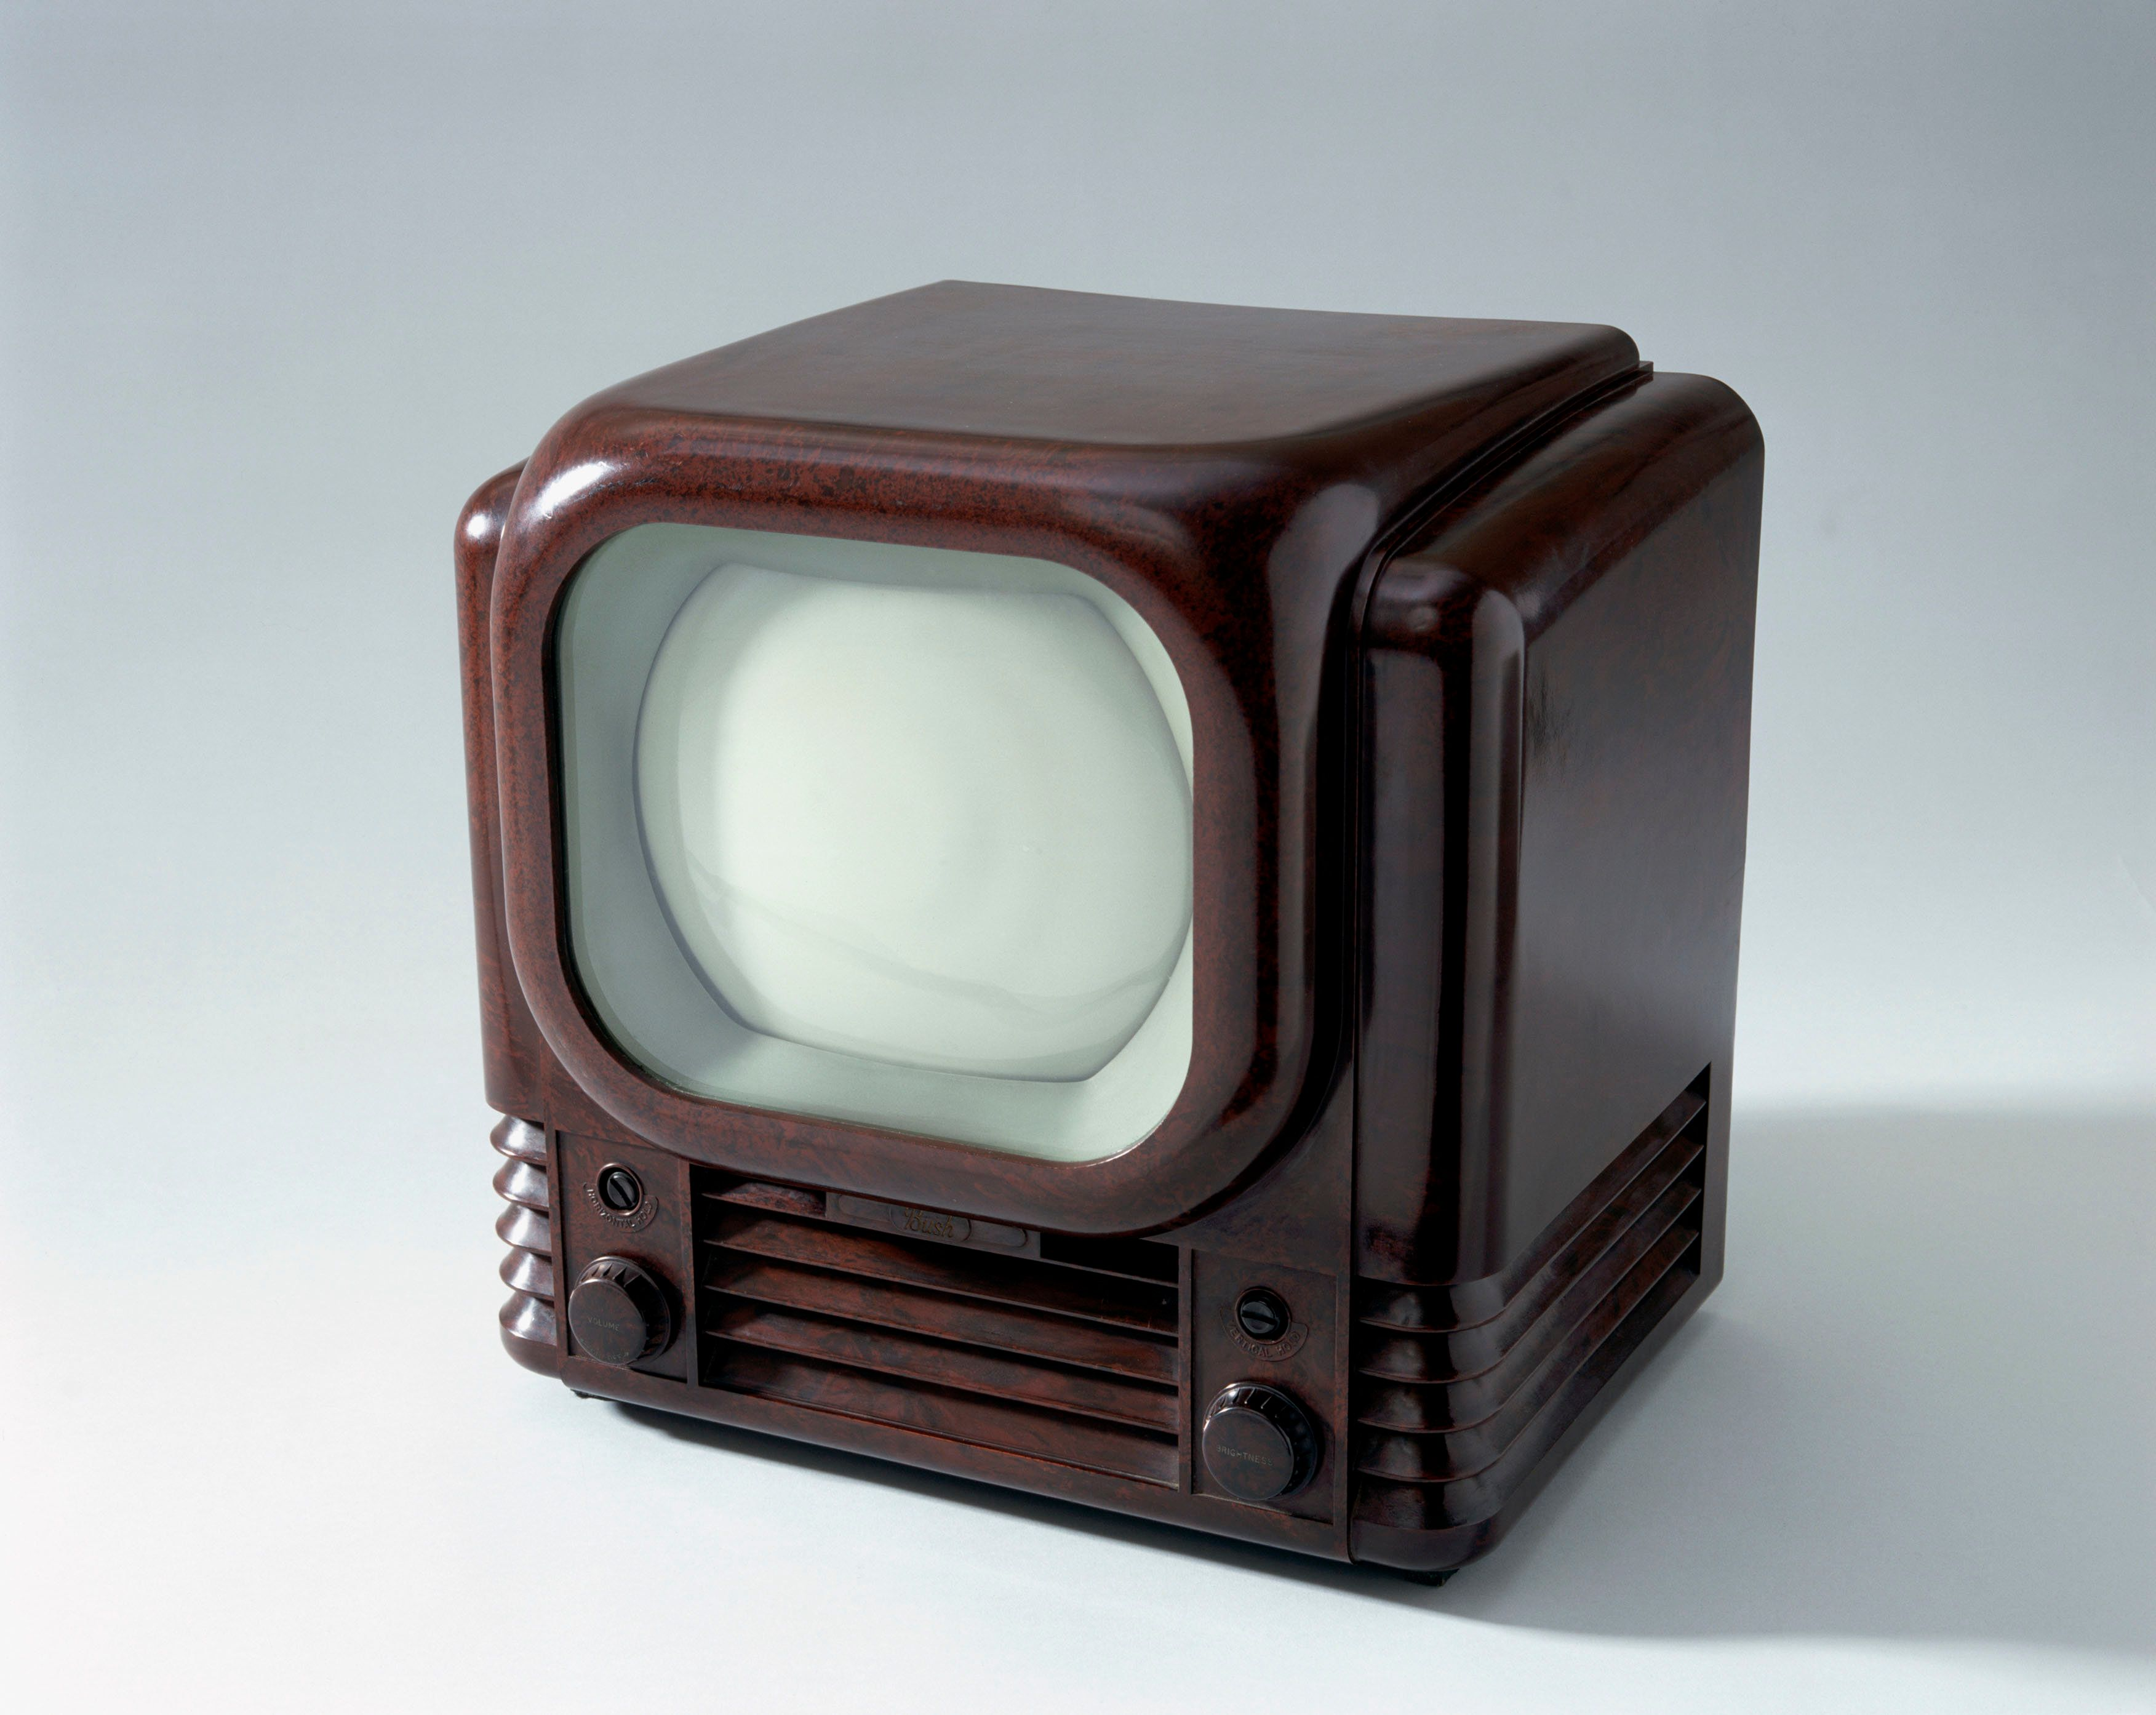 Before 4K, HD And Even LCD There Was